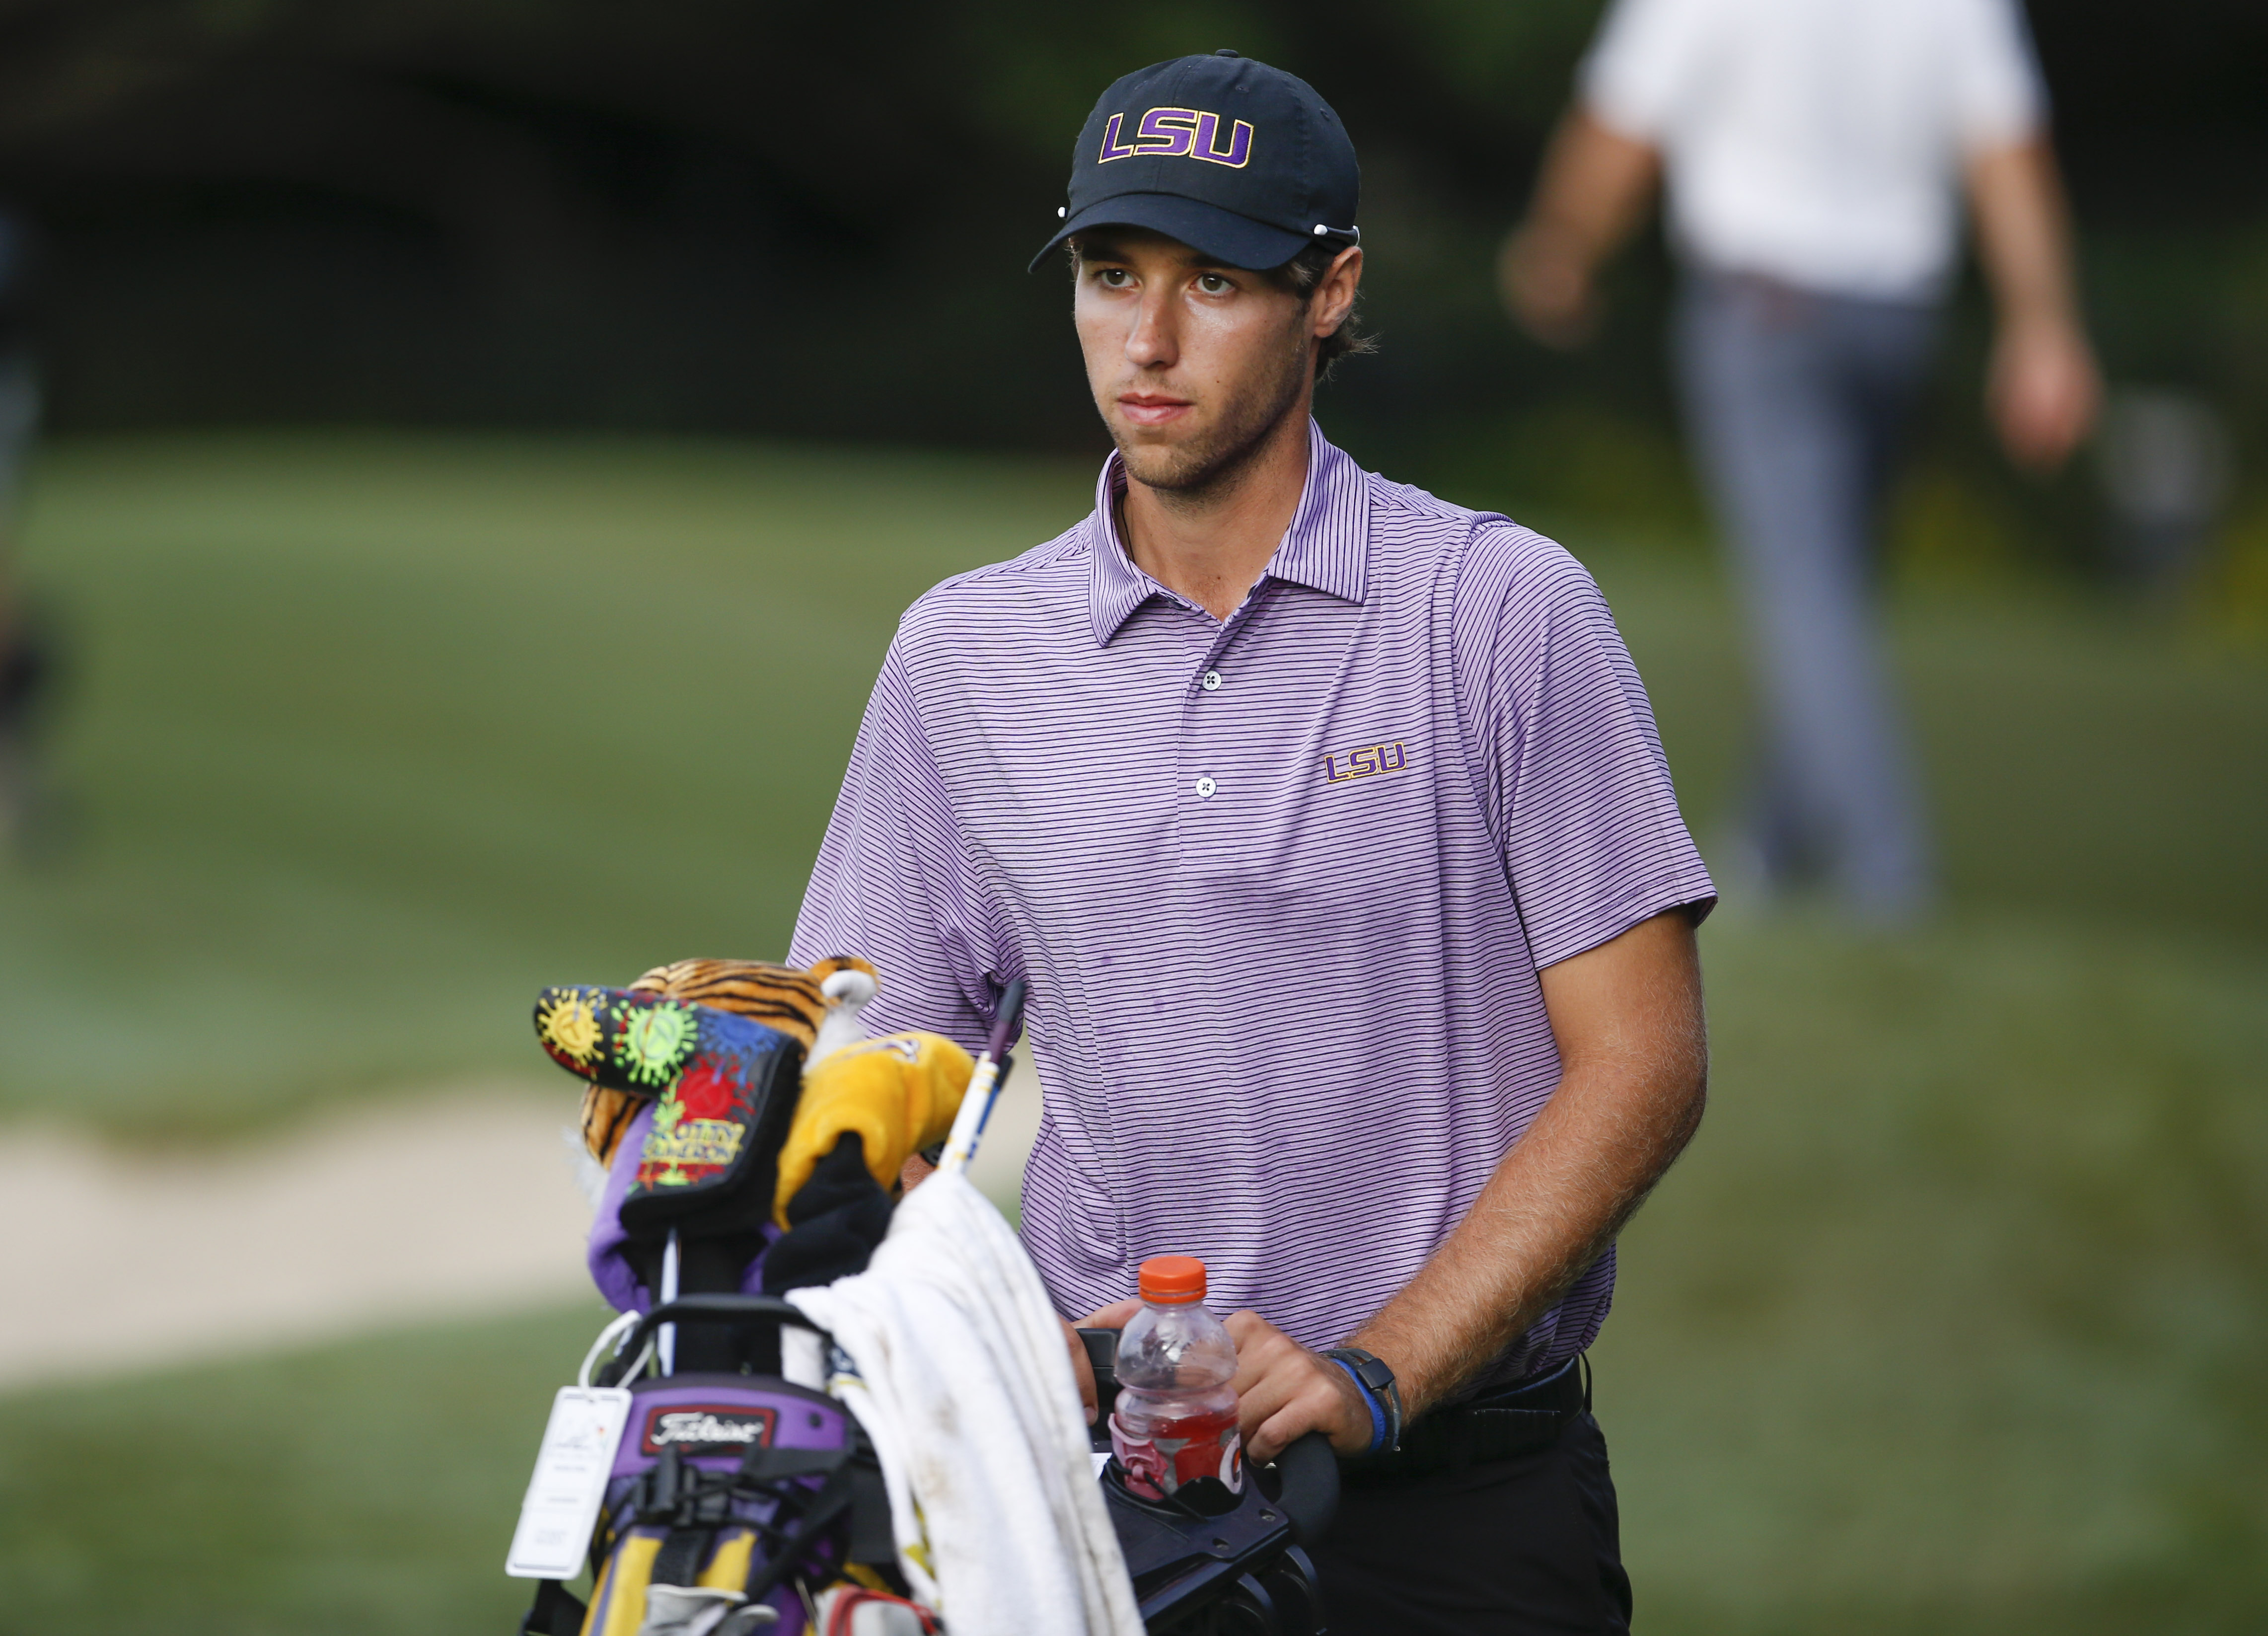 Oct 24, 2017; Windermere, FL, USA; LSU's Jacob Bergeron walks off of the third green during the final round of the Tavistock Collegiate Invitational golf tournament at the Isleworth Country Club. Mandatory Credit: Reinhold Matay-USA TODAY Sports